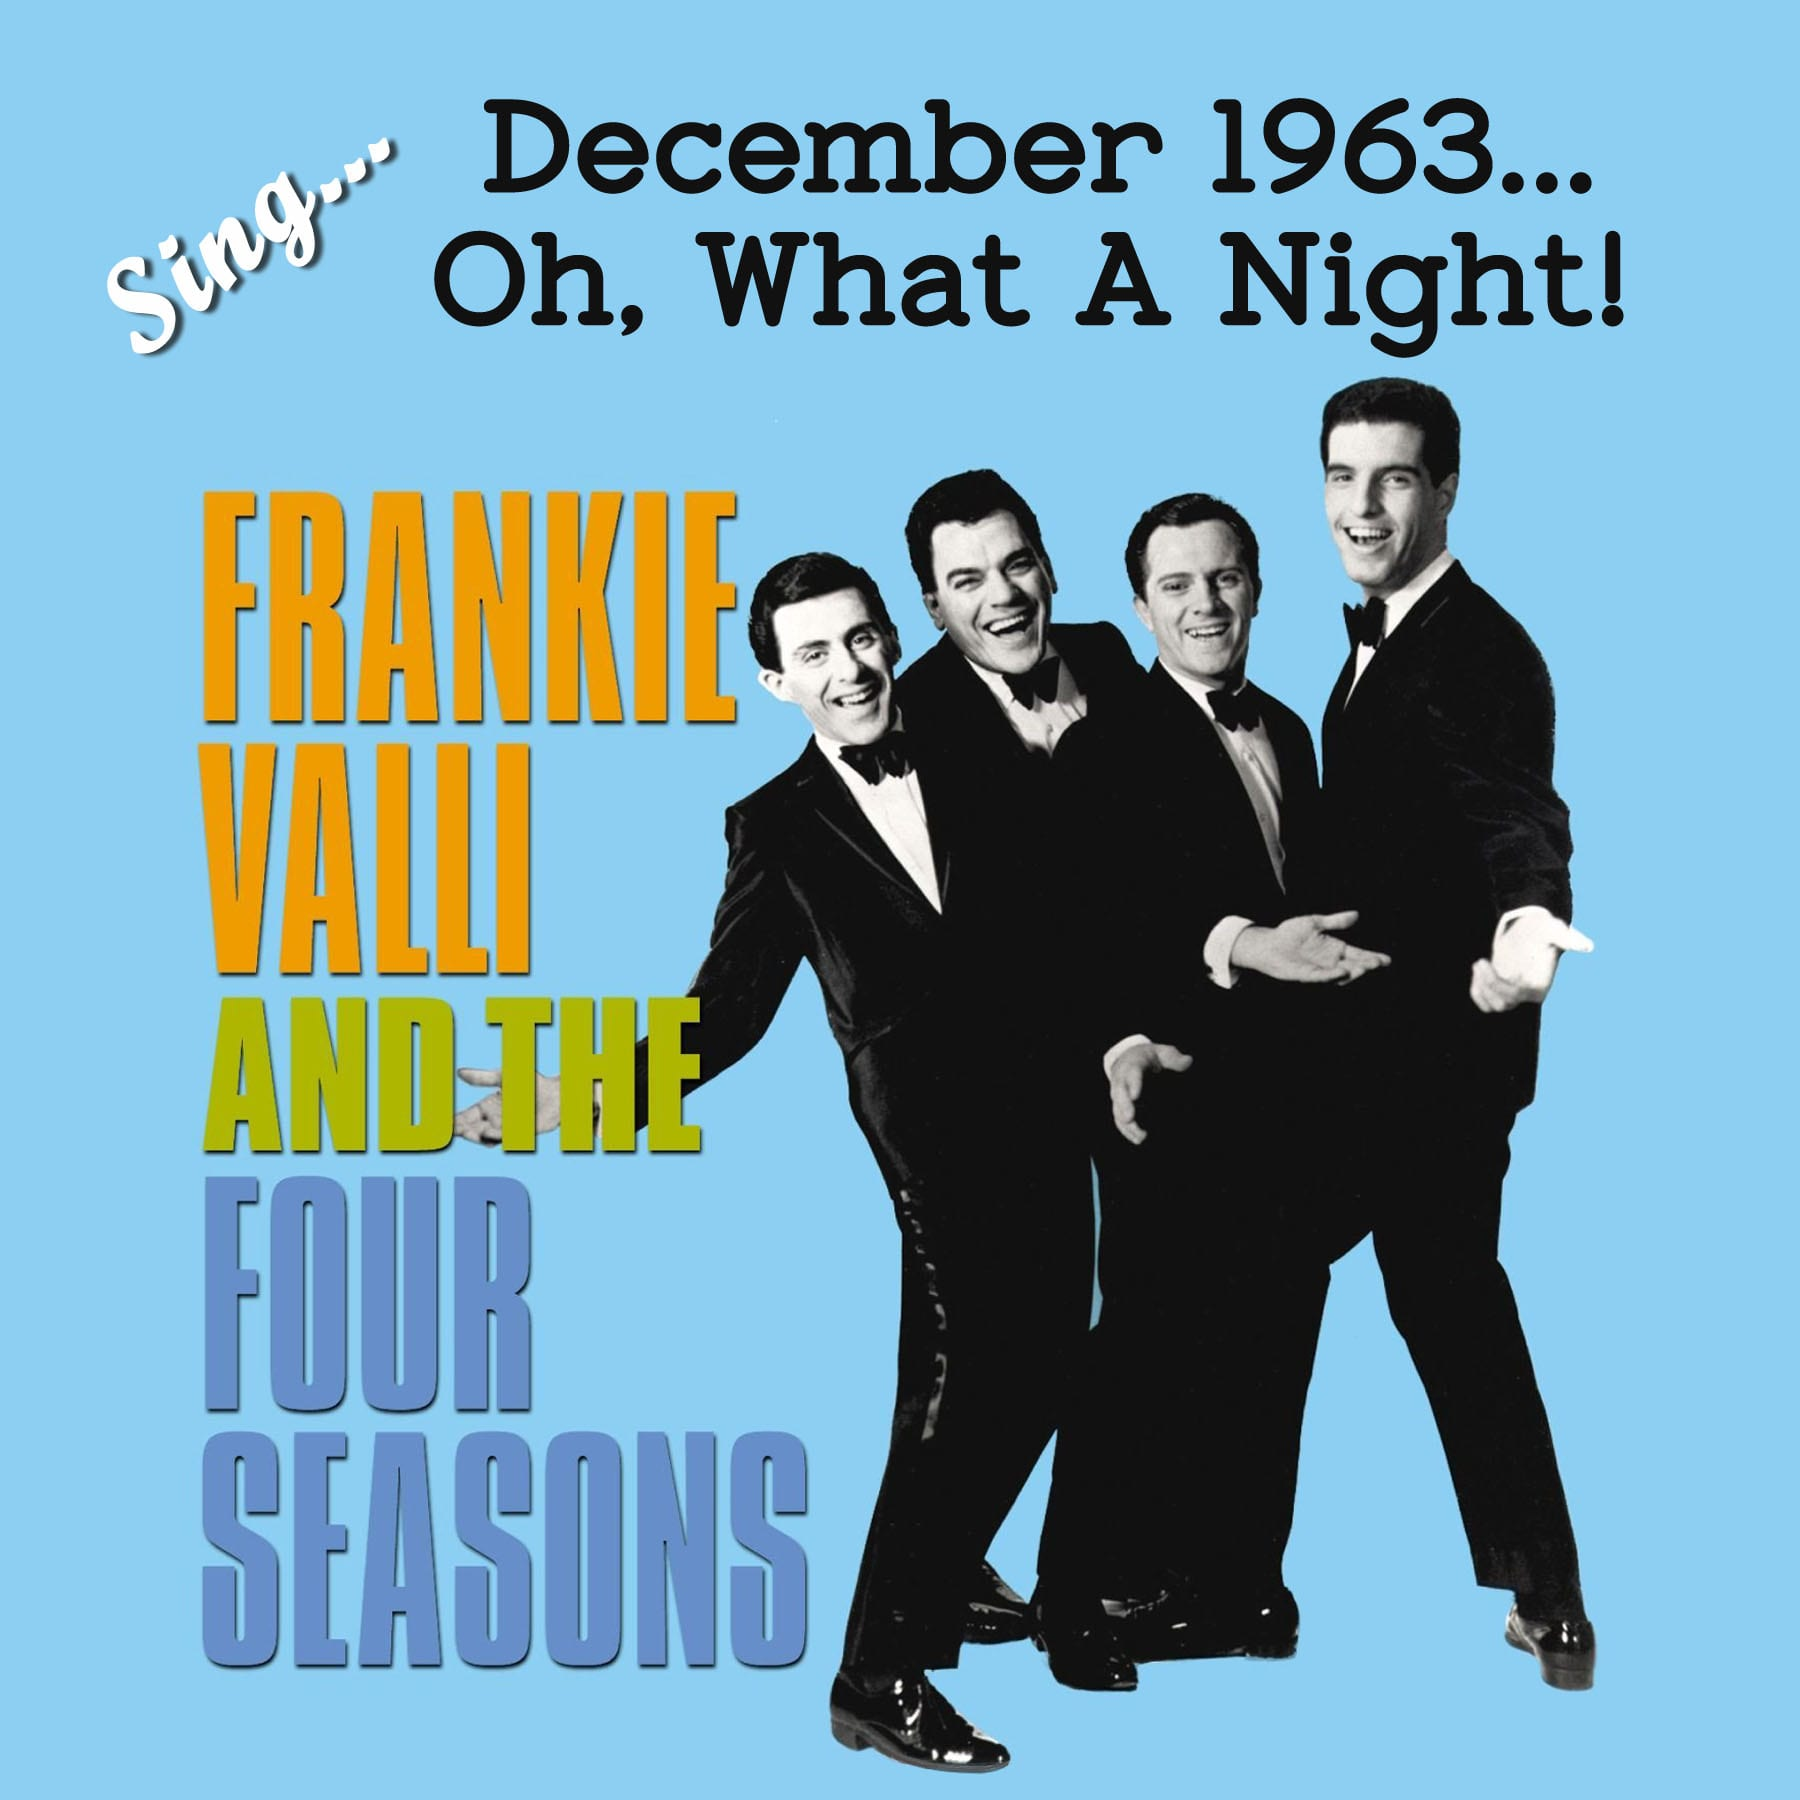 Sing Frankie Valli and The Four Seasons – December 1963 (Oh, What A Night)! at the Eagles Club North Vancouver